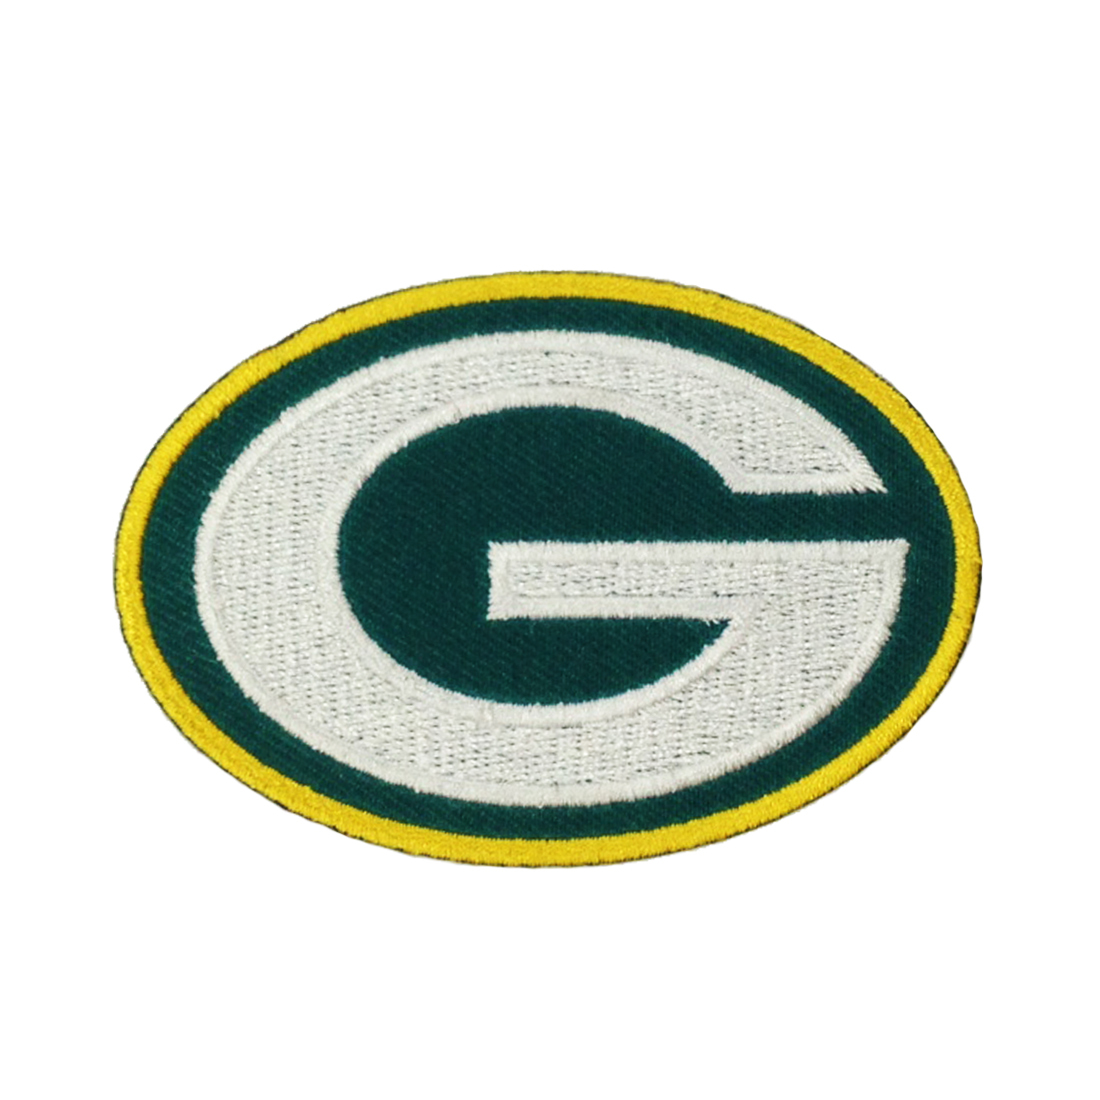 Small Outdoor Ceiling Fans Green Bay Packers Logo I Embroidered Iron Patches - Patches